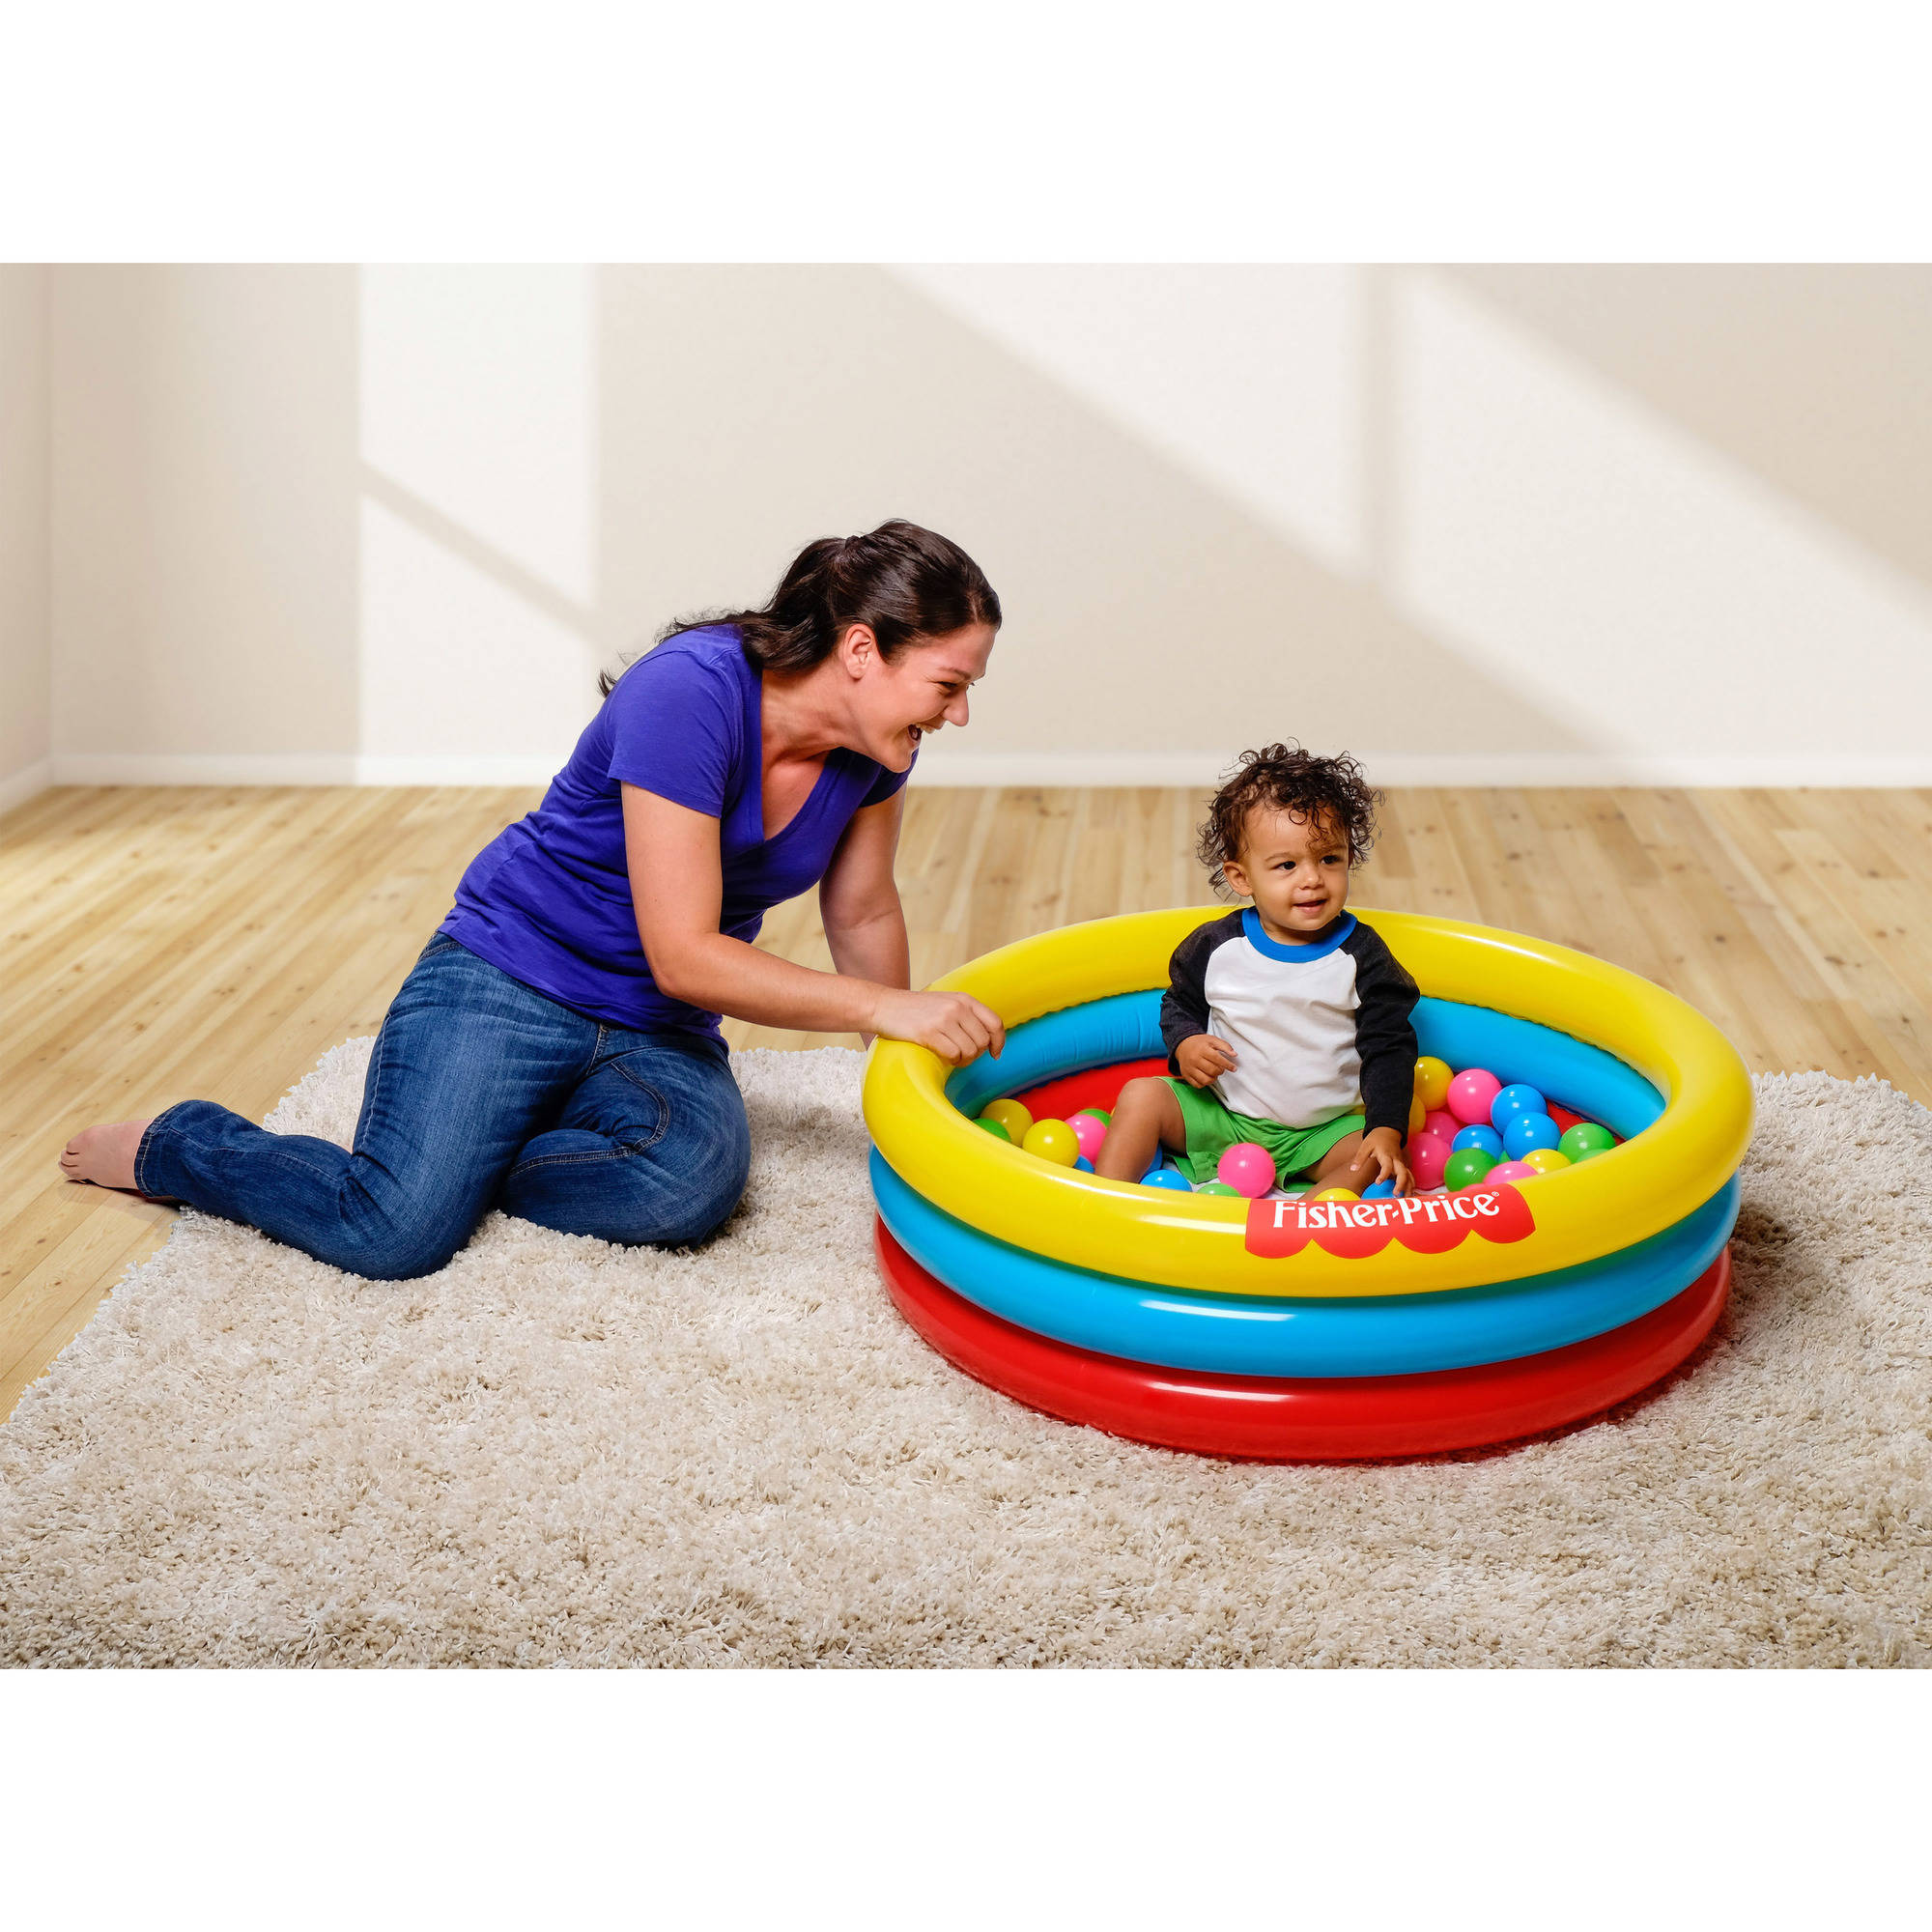 "Fisher-Price 3-Ring Ball Pit Pool, 36"" x 36"" x 10"""